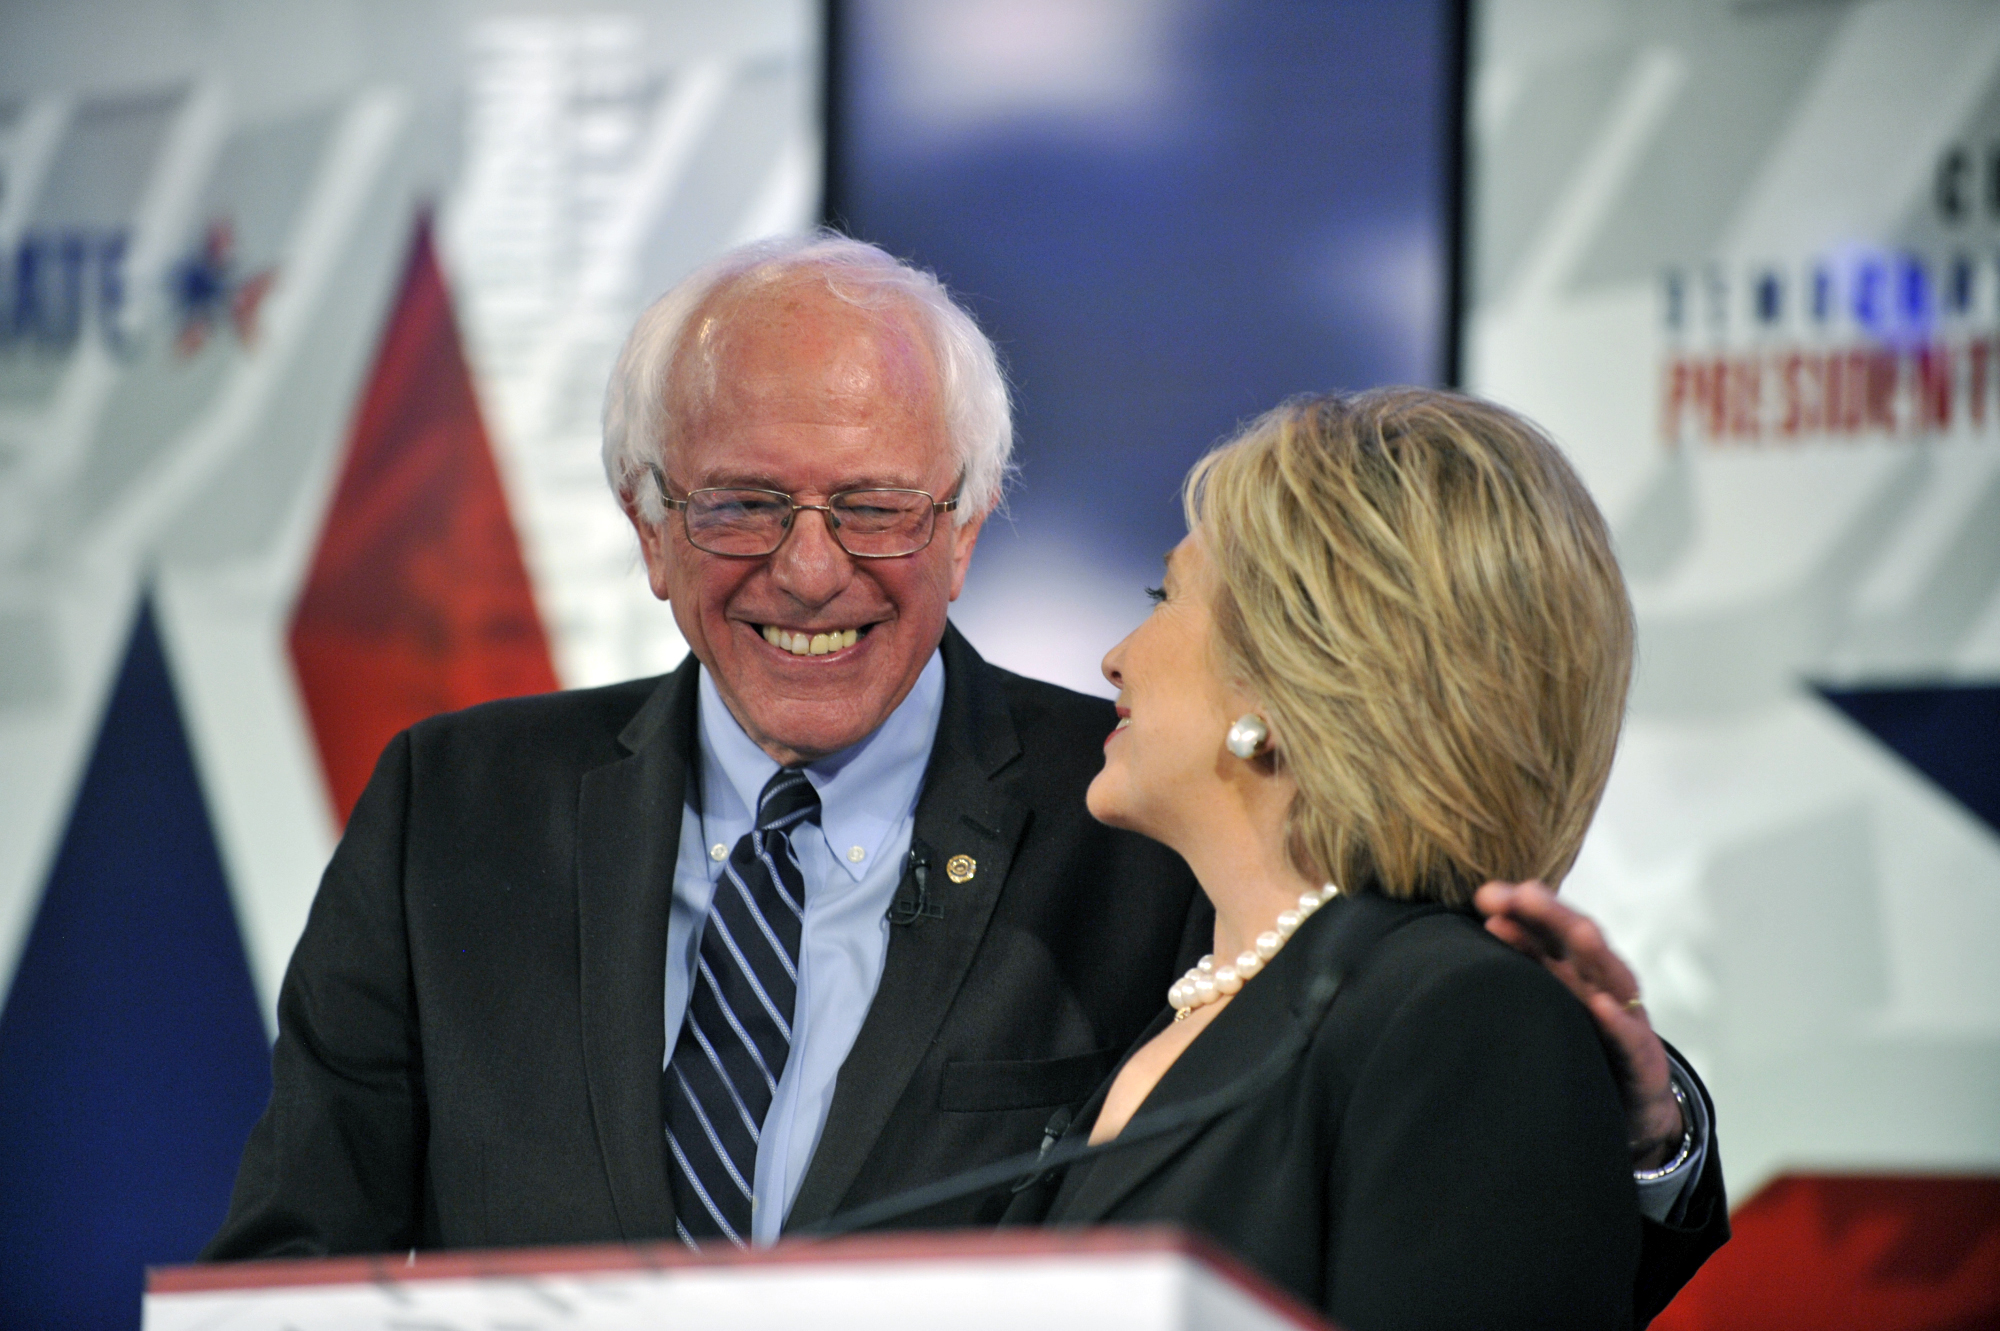 Sen. Bernie Sanders and Former U.S. Secretary of State Hillary Clinton at the Democratic Presidential Debate in Des Moines, Iowa on Nov. 14, 2015.